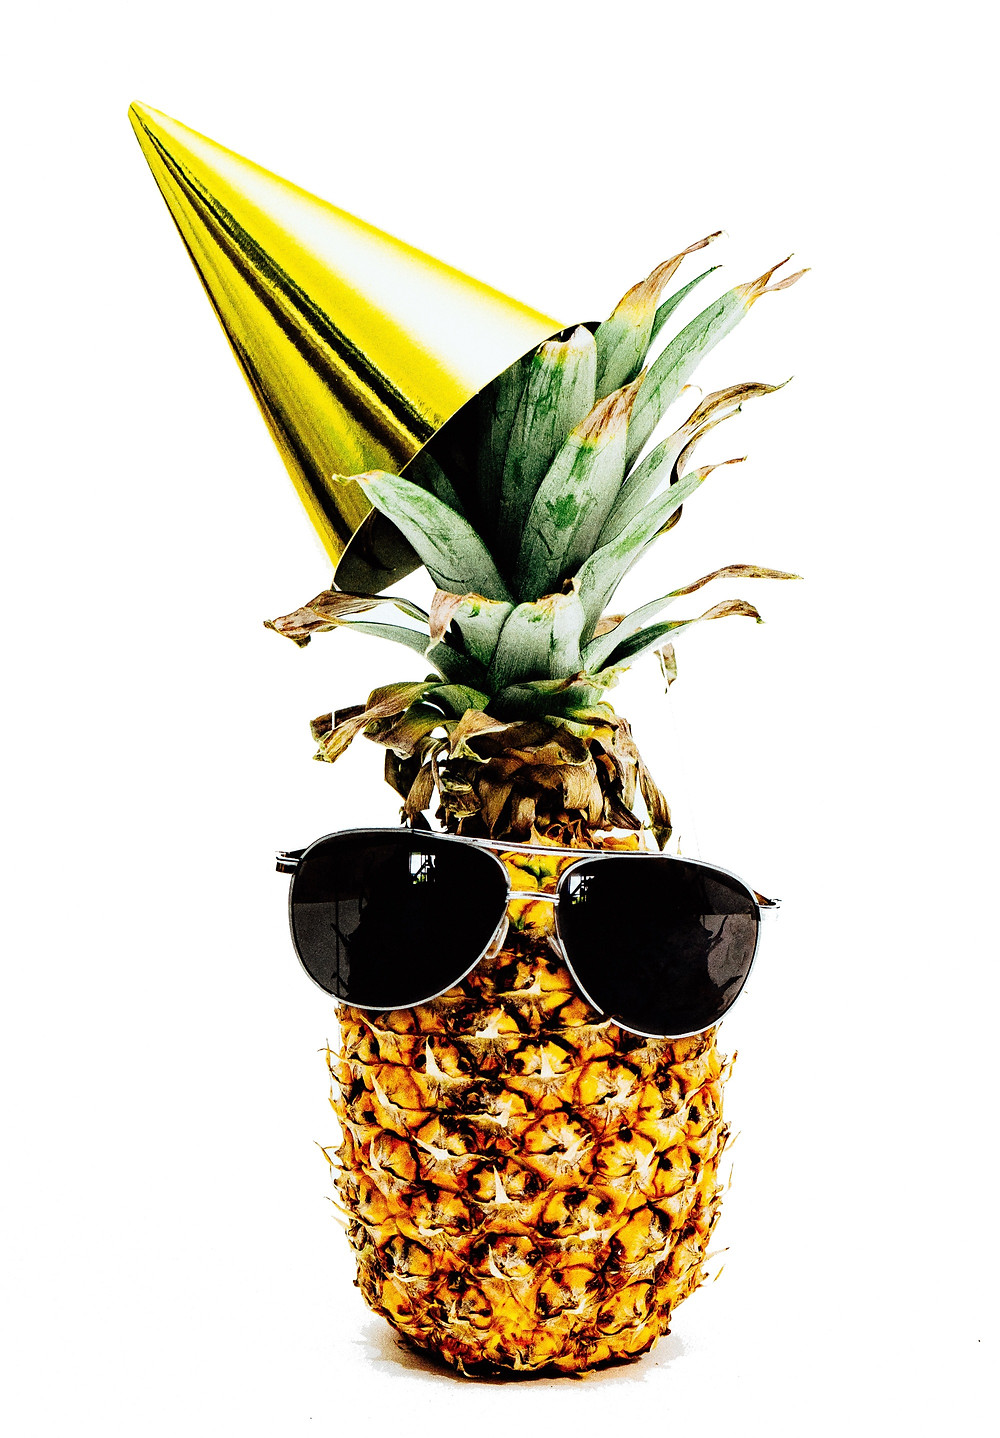 Party Pineapple Wearing Sunglasses